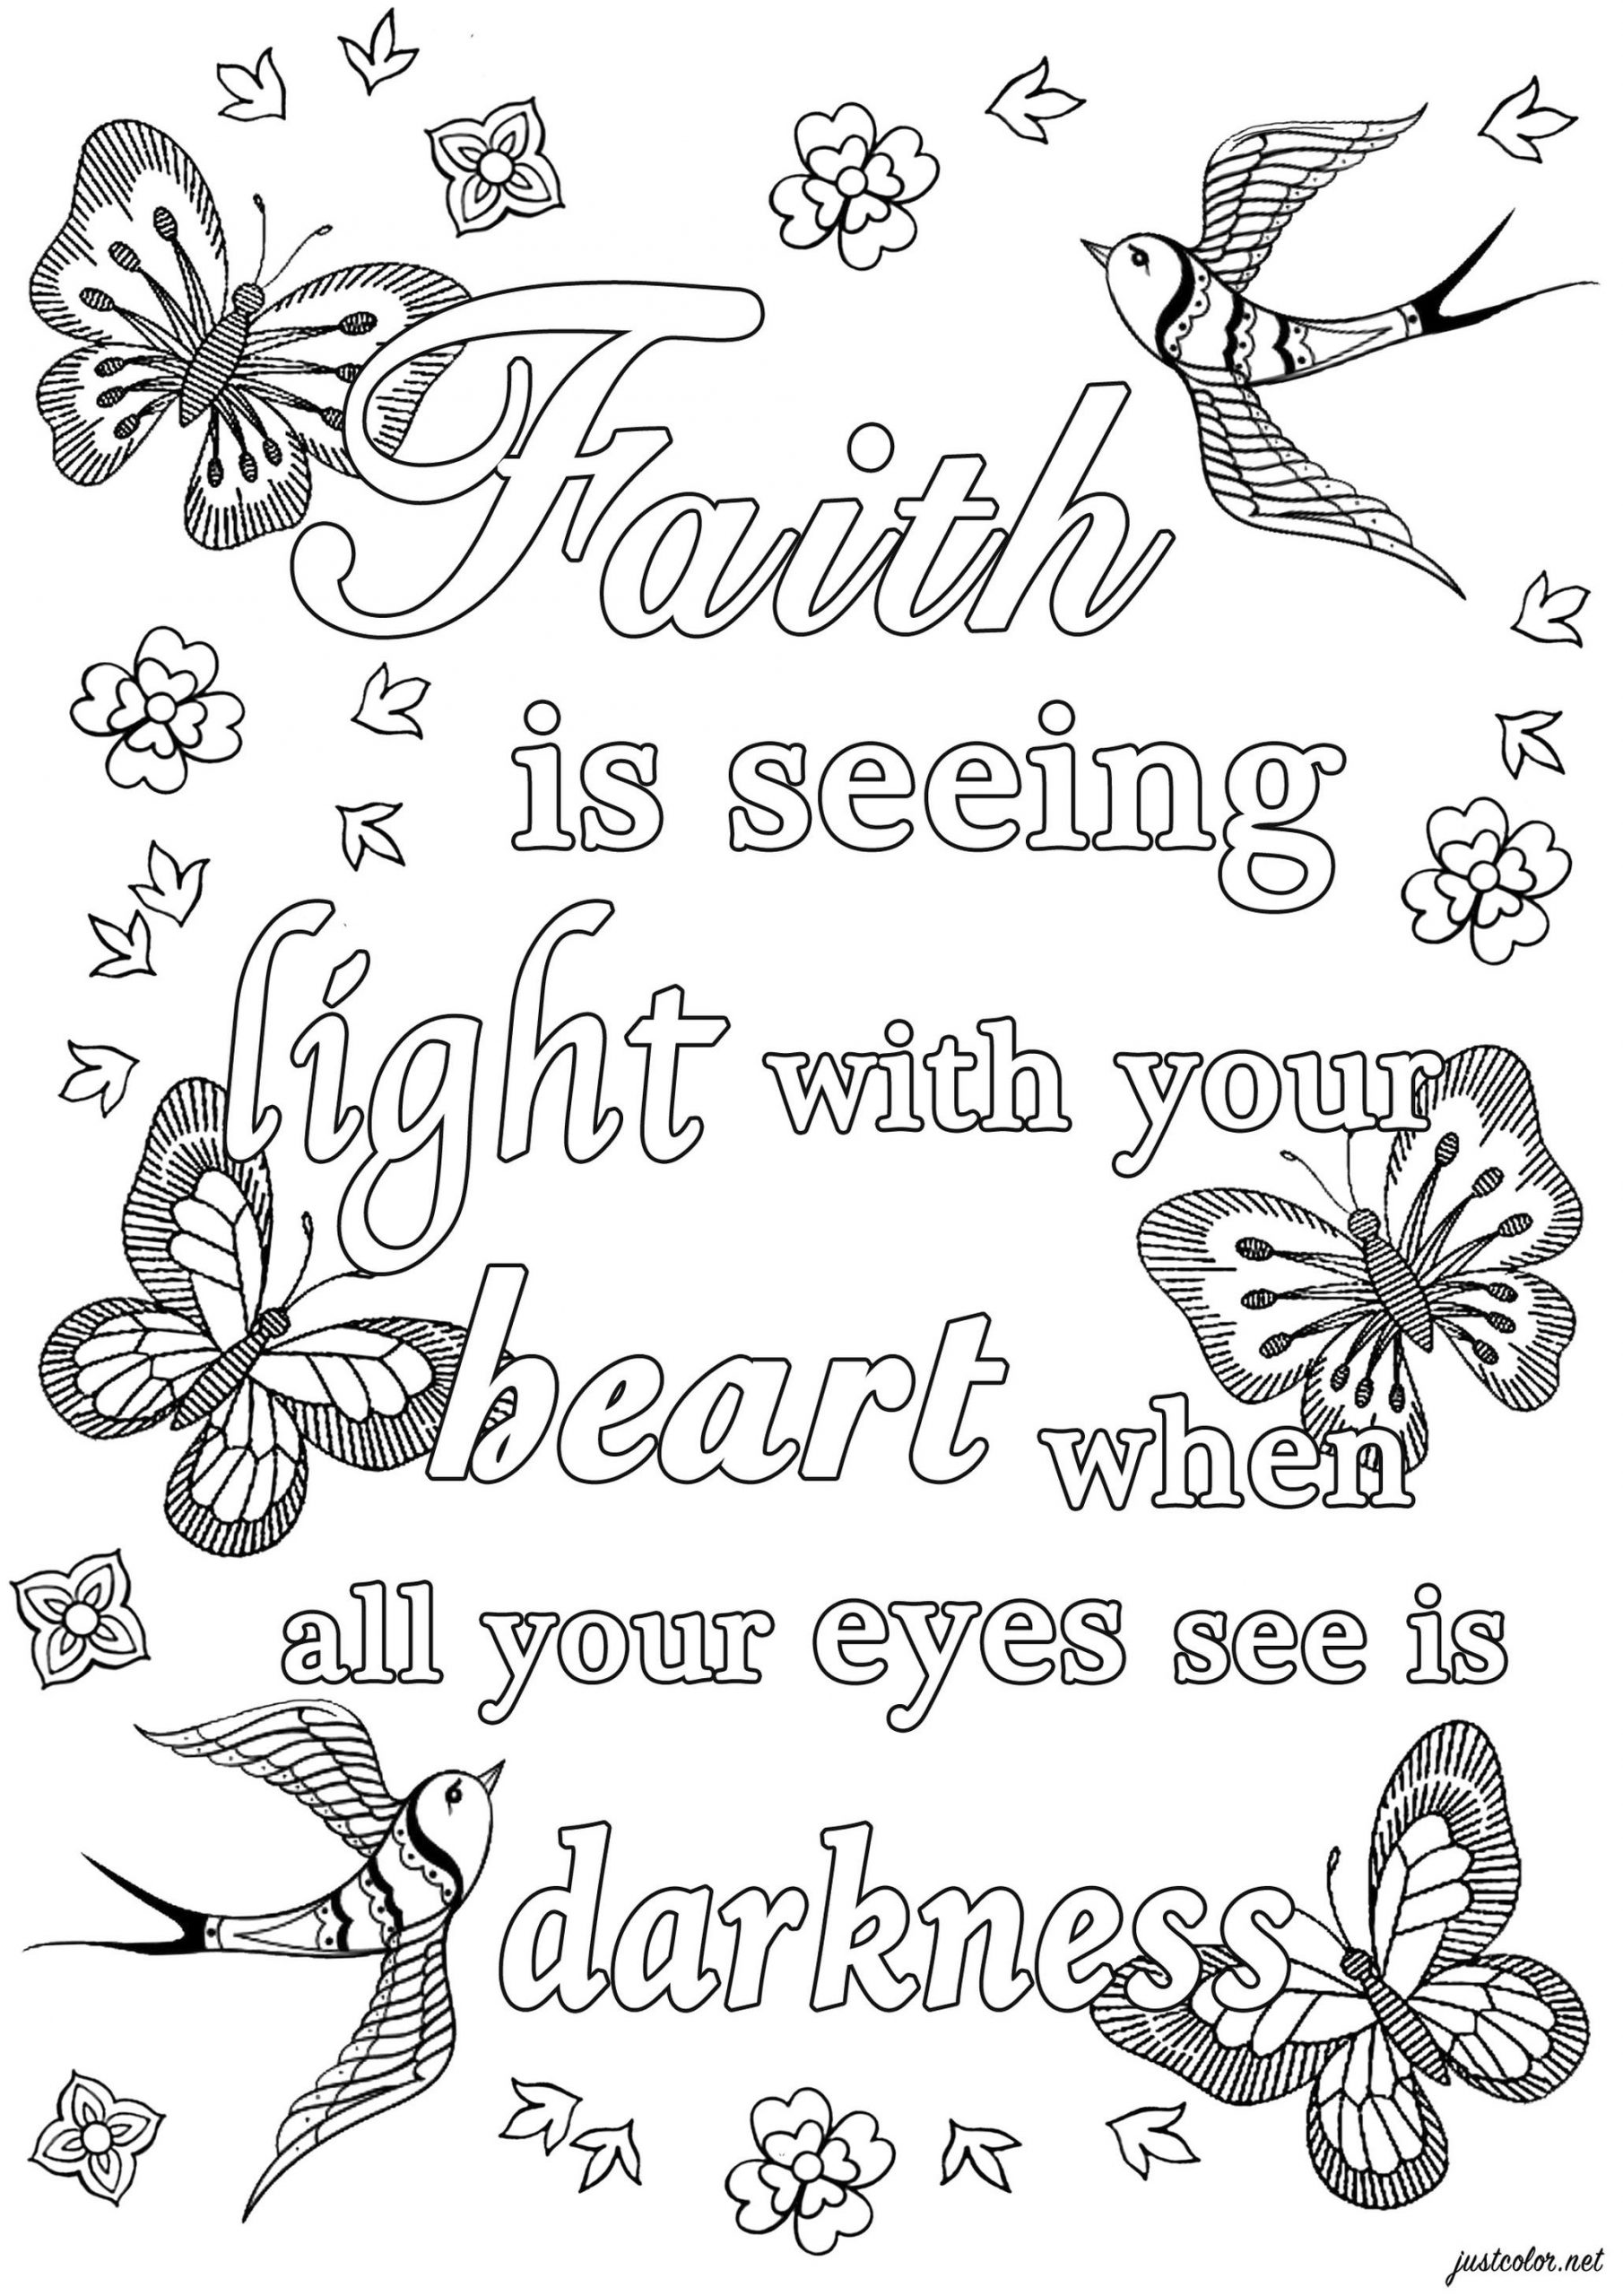 Printable Adult Coloring Pages Quotes Faith in Darkness